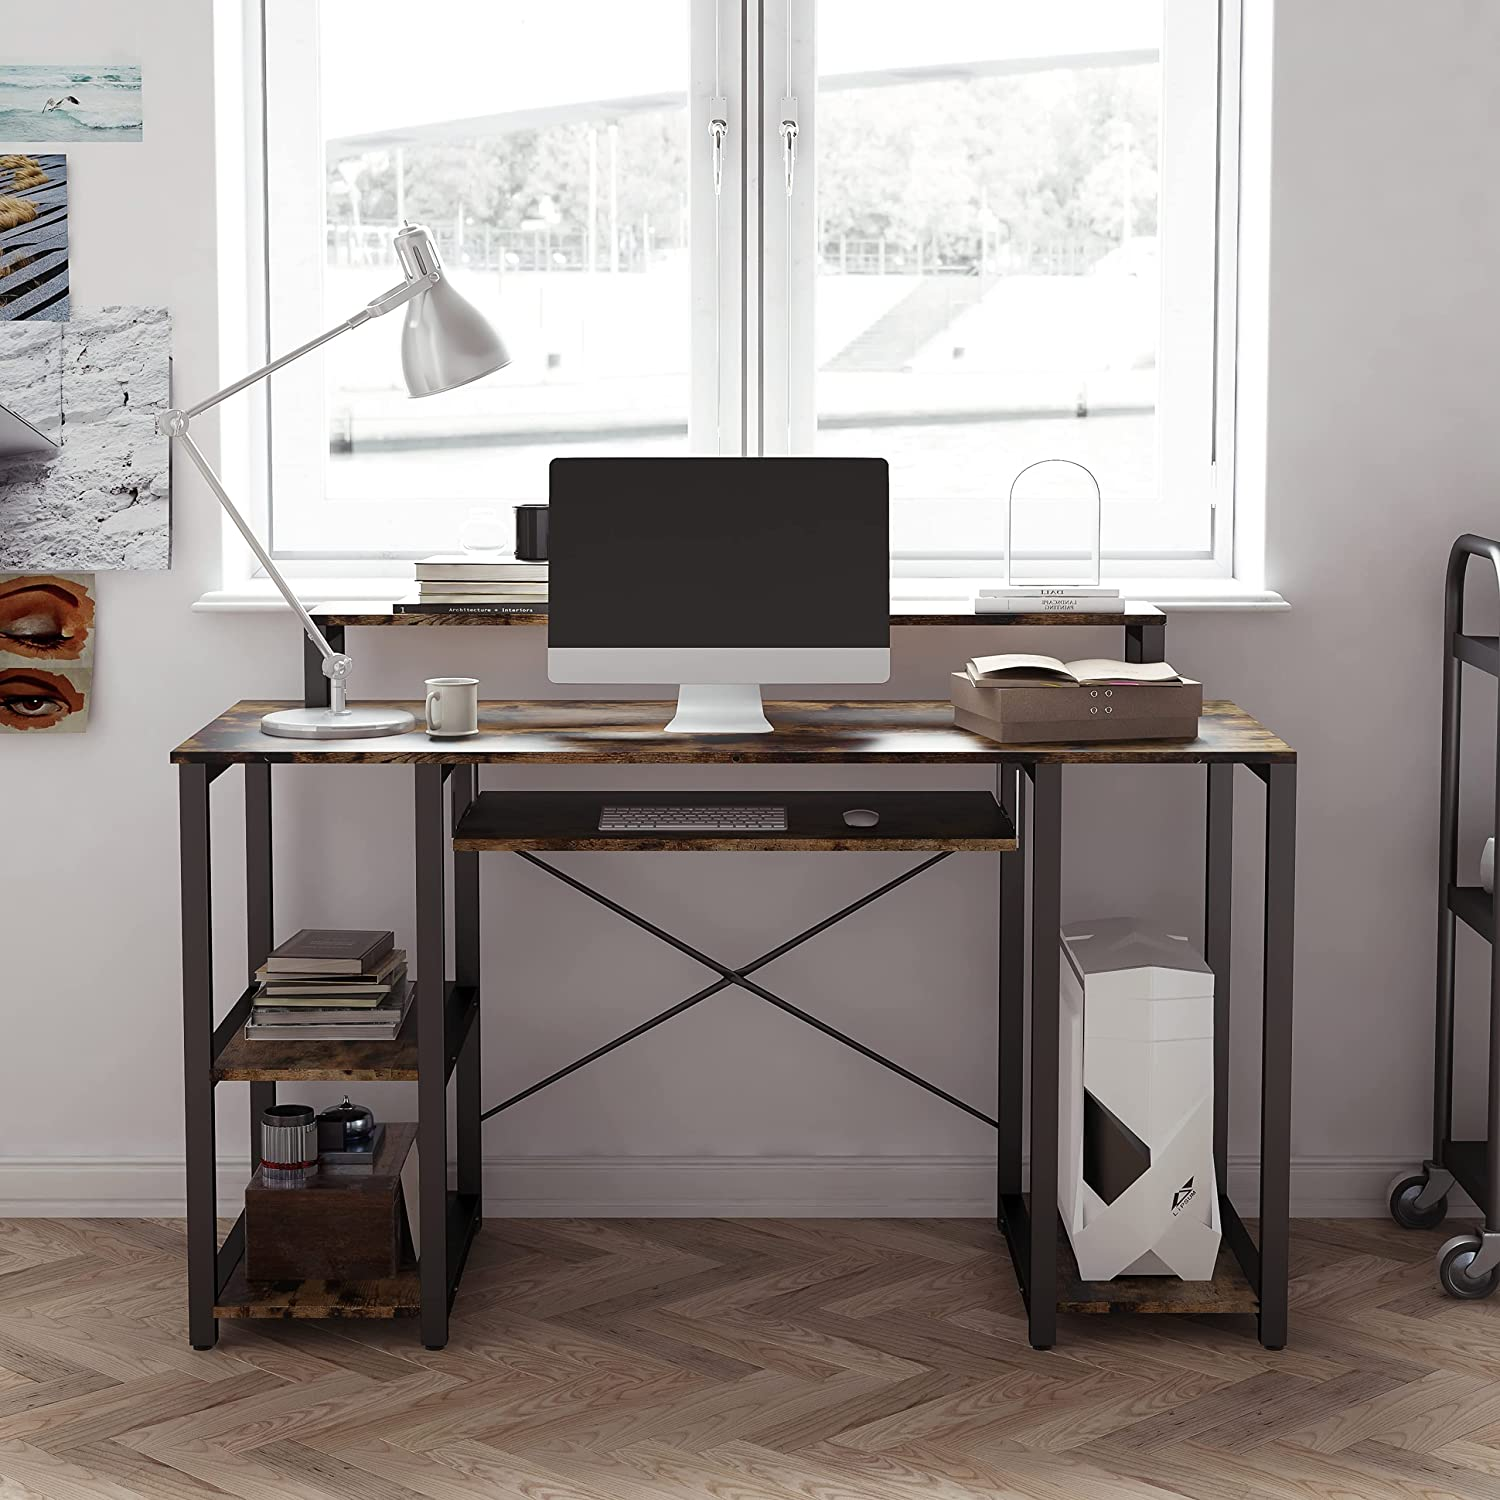 Computer Desk Max 74% OFF with Open Storage Sturdy Shelves Modern Writing De Import